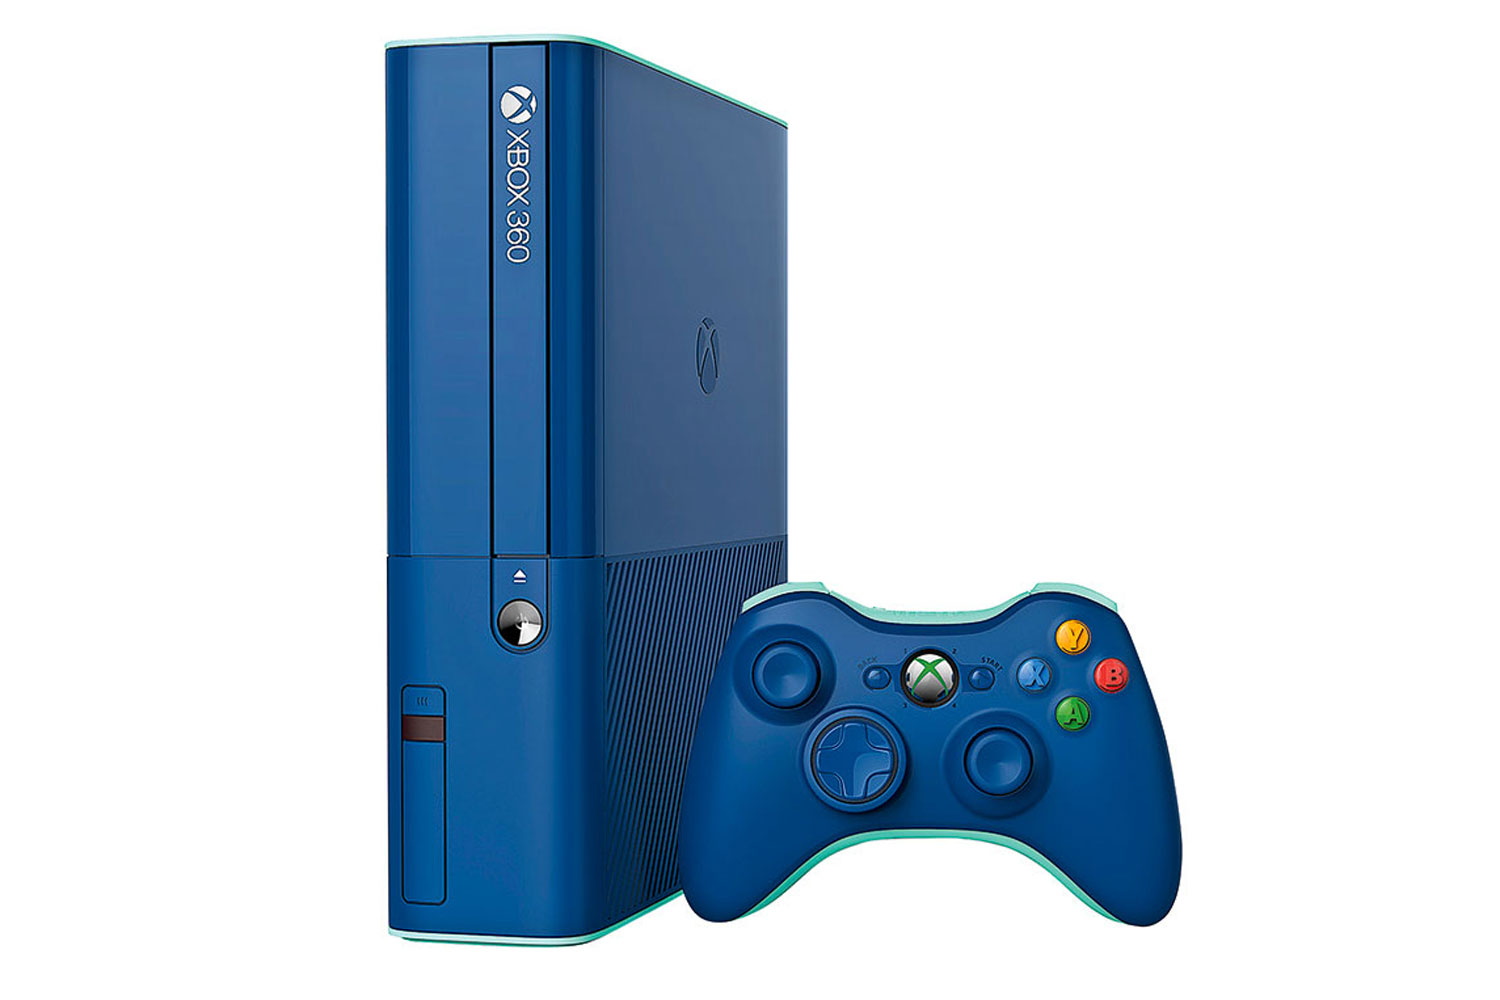 Xbox360 - Download Images, Photos and Pictures.